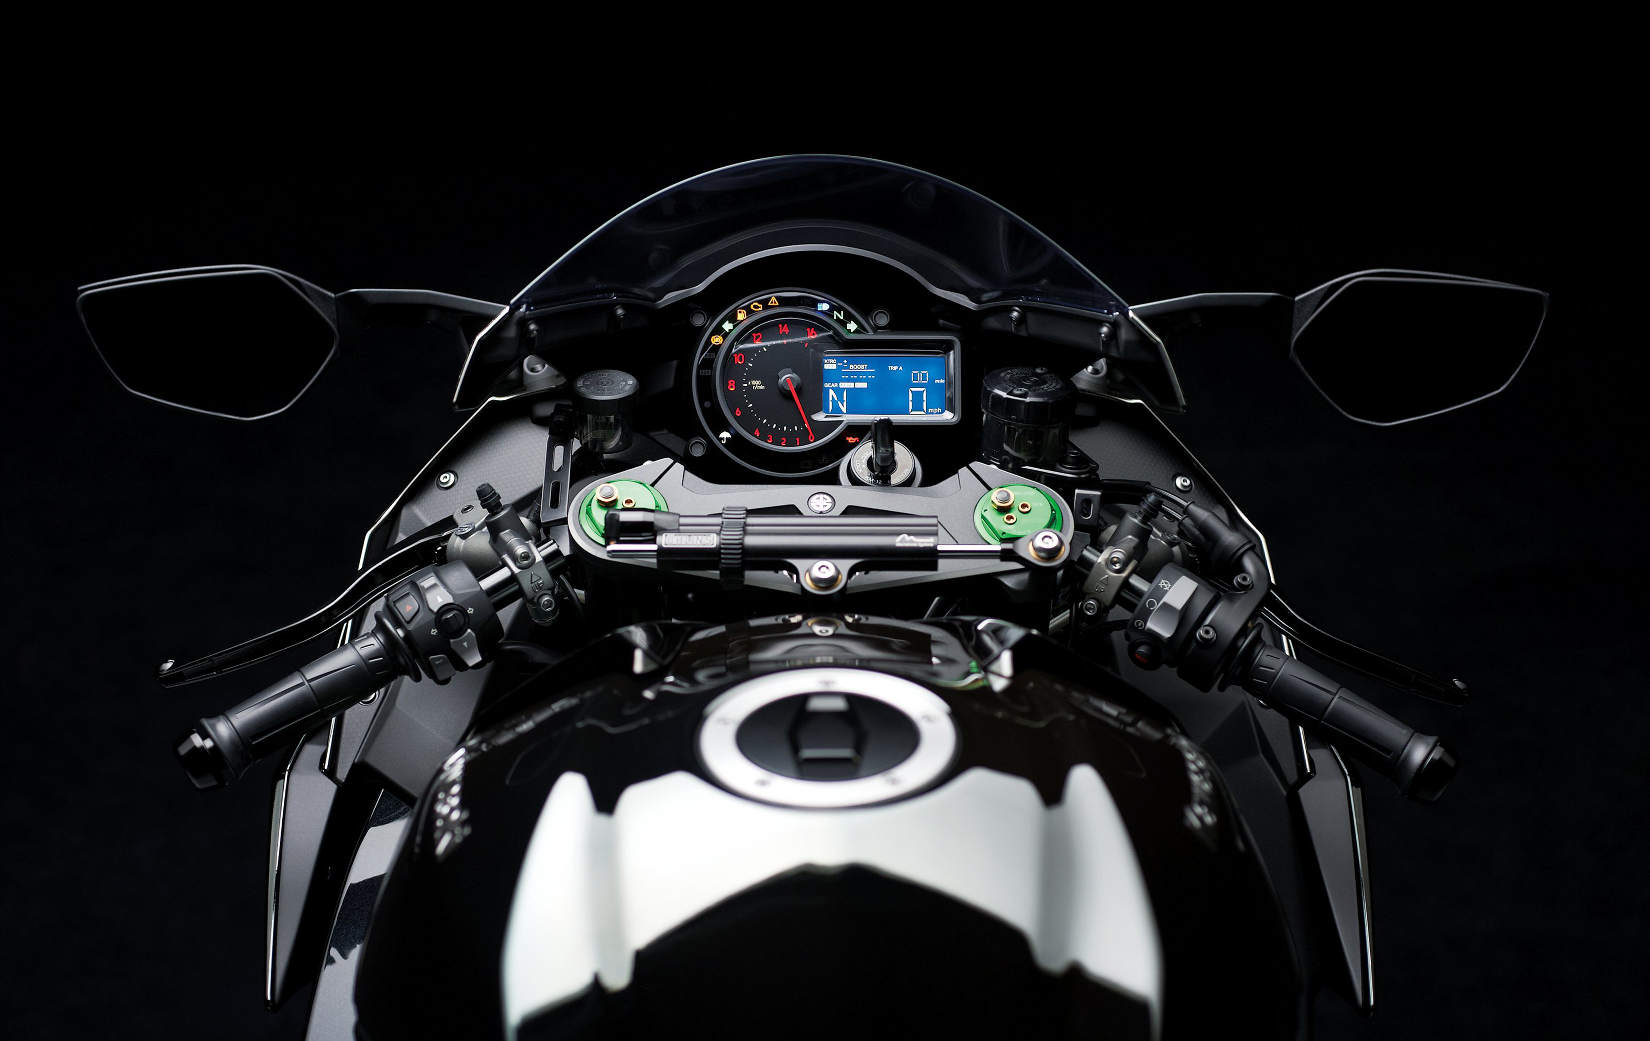 Kawasaki Ninja H2 Arrives New Benchmark For Road Legal Performance